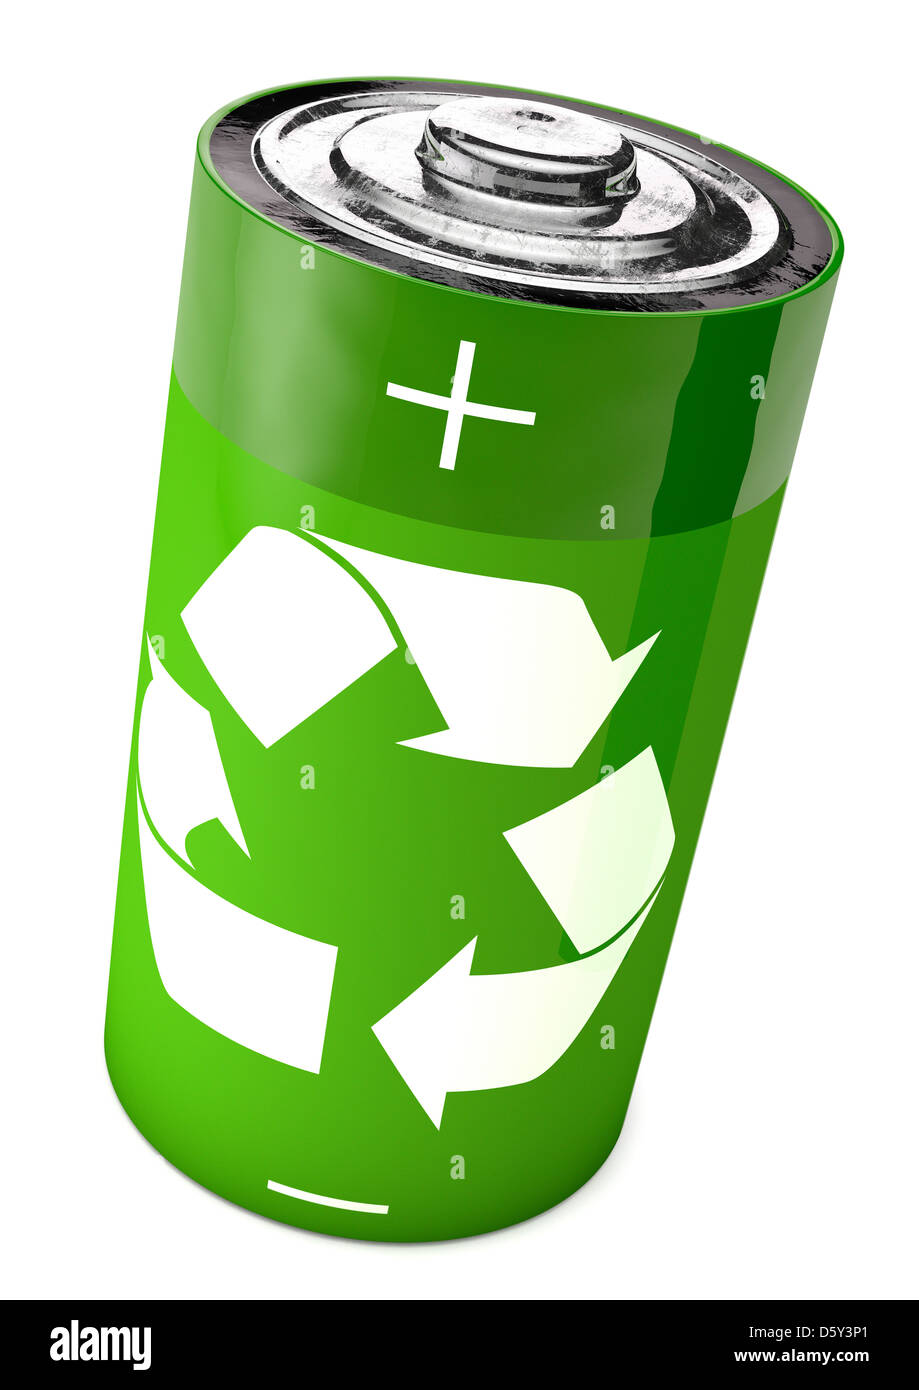 Battery with a recycling symbol - Concept - Stock Image